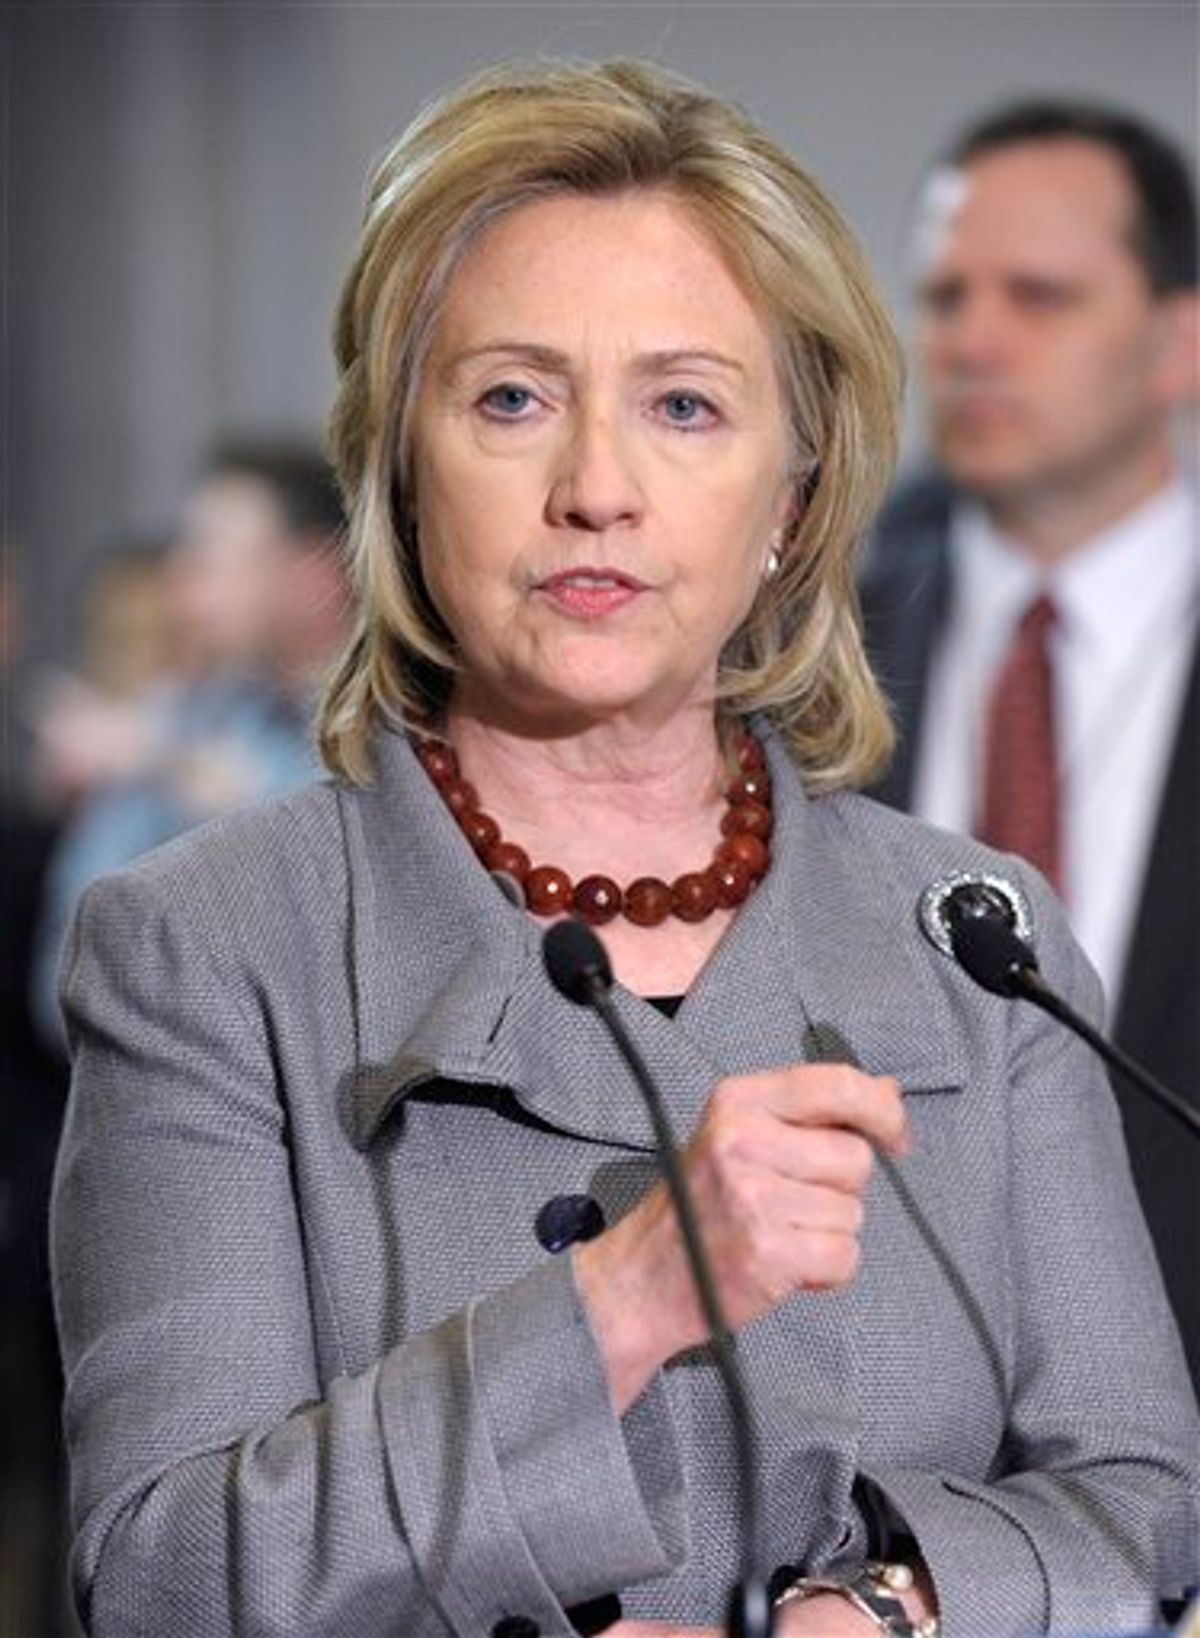 Secretary of State Hillary Rodham Clinton speaks to reporters on Capitol Hill in Washington, Thursday, Feb. 17, 2011, following an all-Senators meeting on Egypt. (AP Photo/Susan Walsh) (AP)